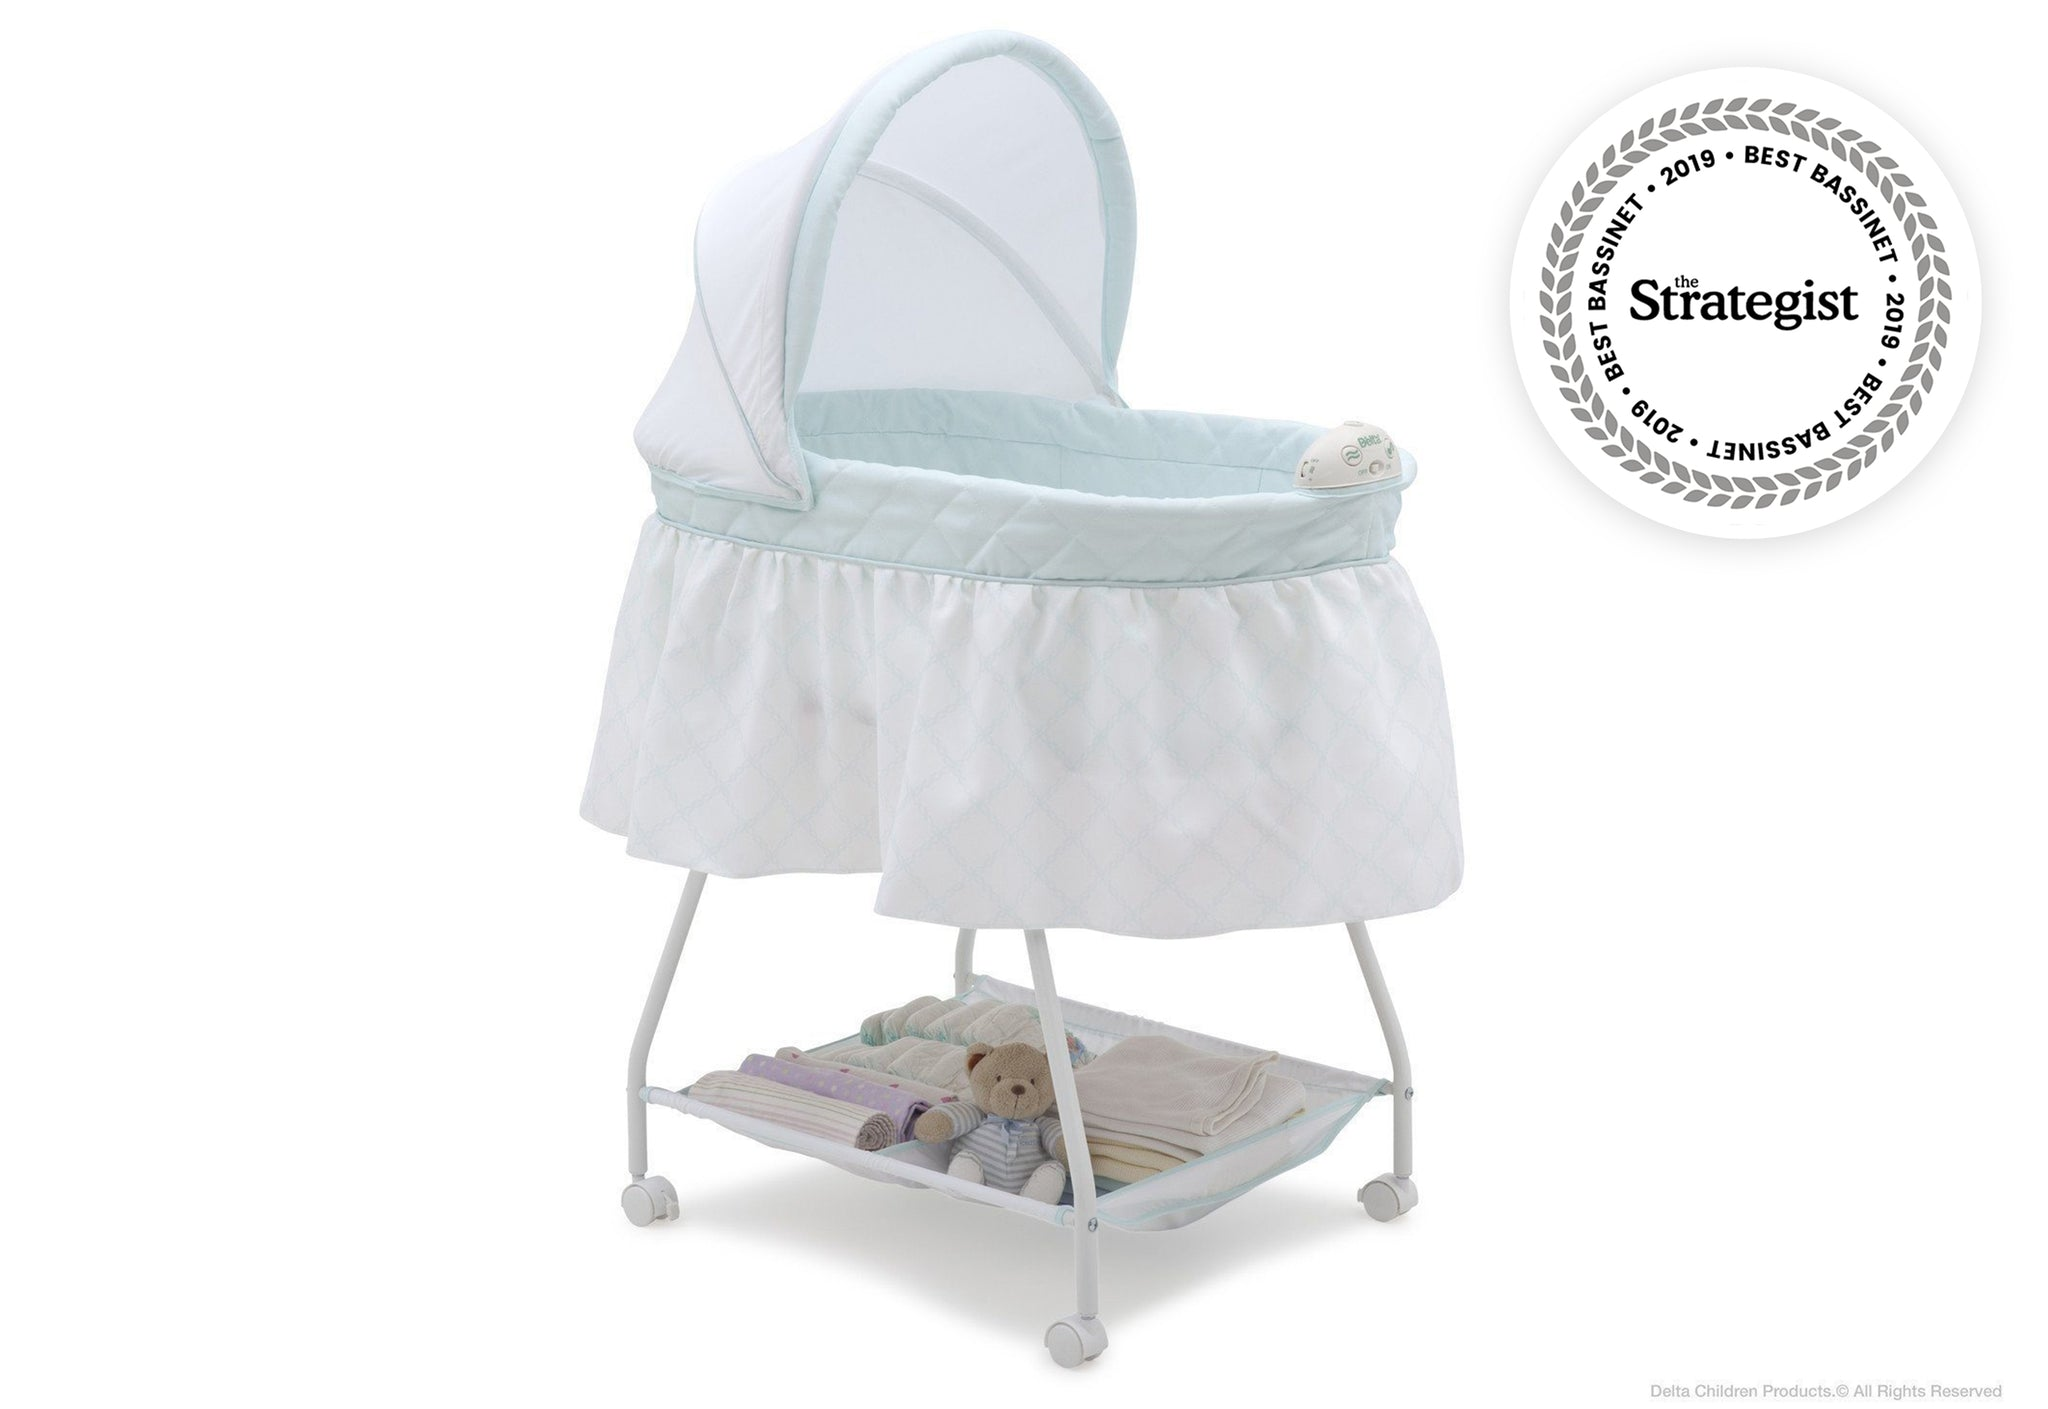 Delta Children Lattice (446) Deluxe Sweet Beginnings Bassinet, Side View d1d